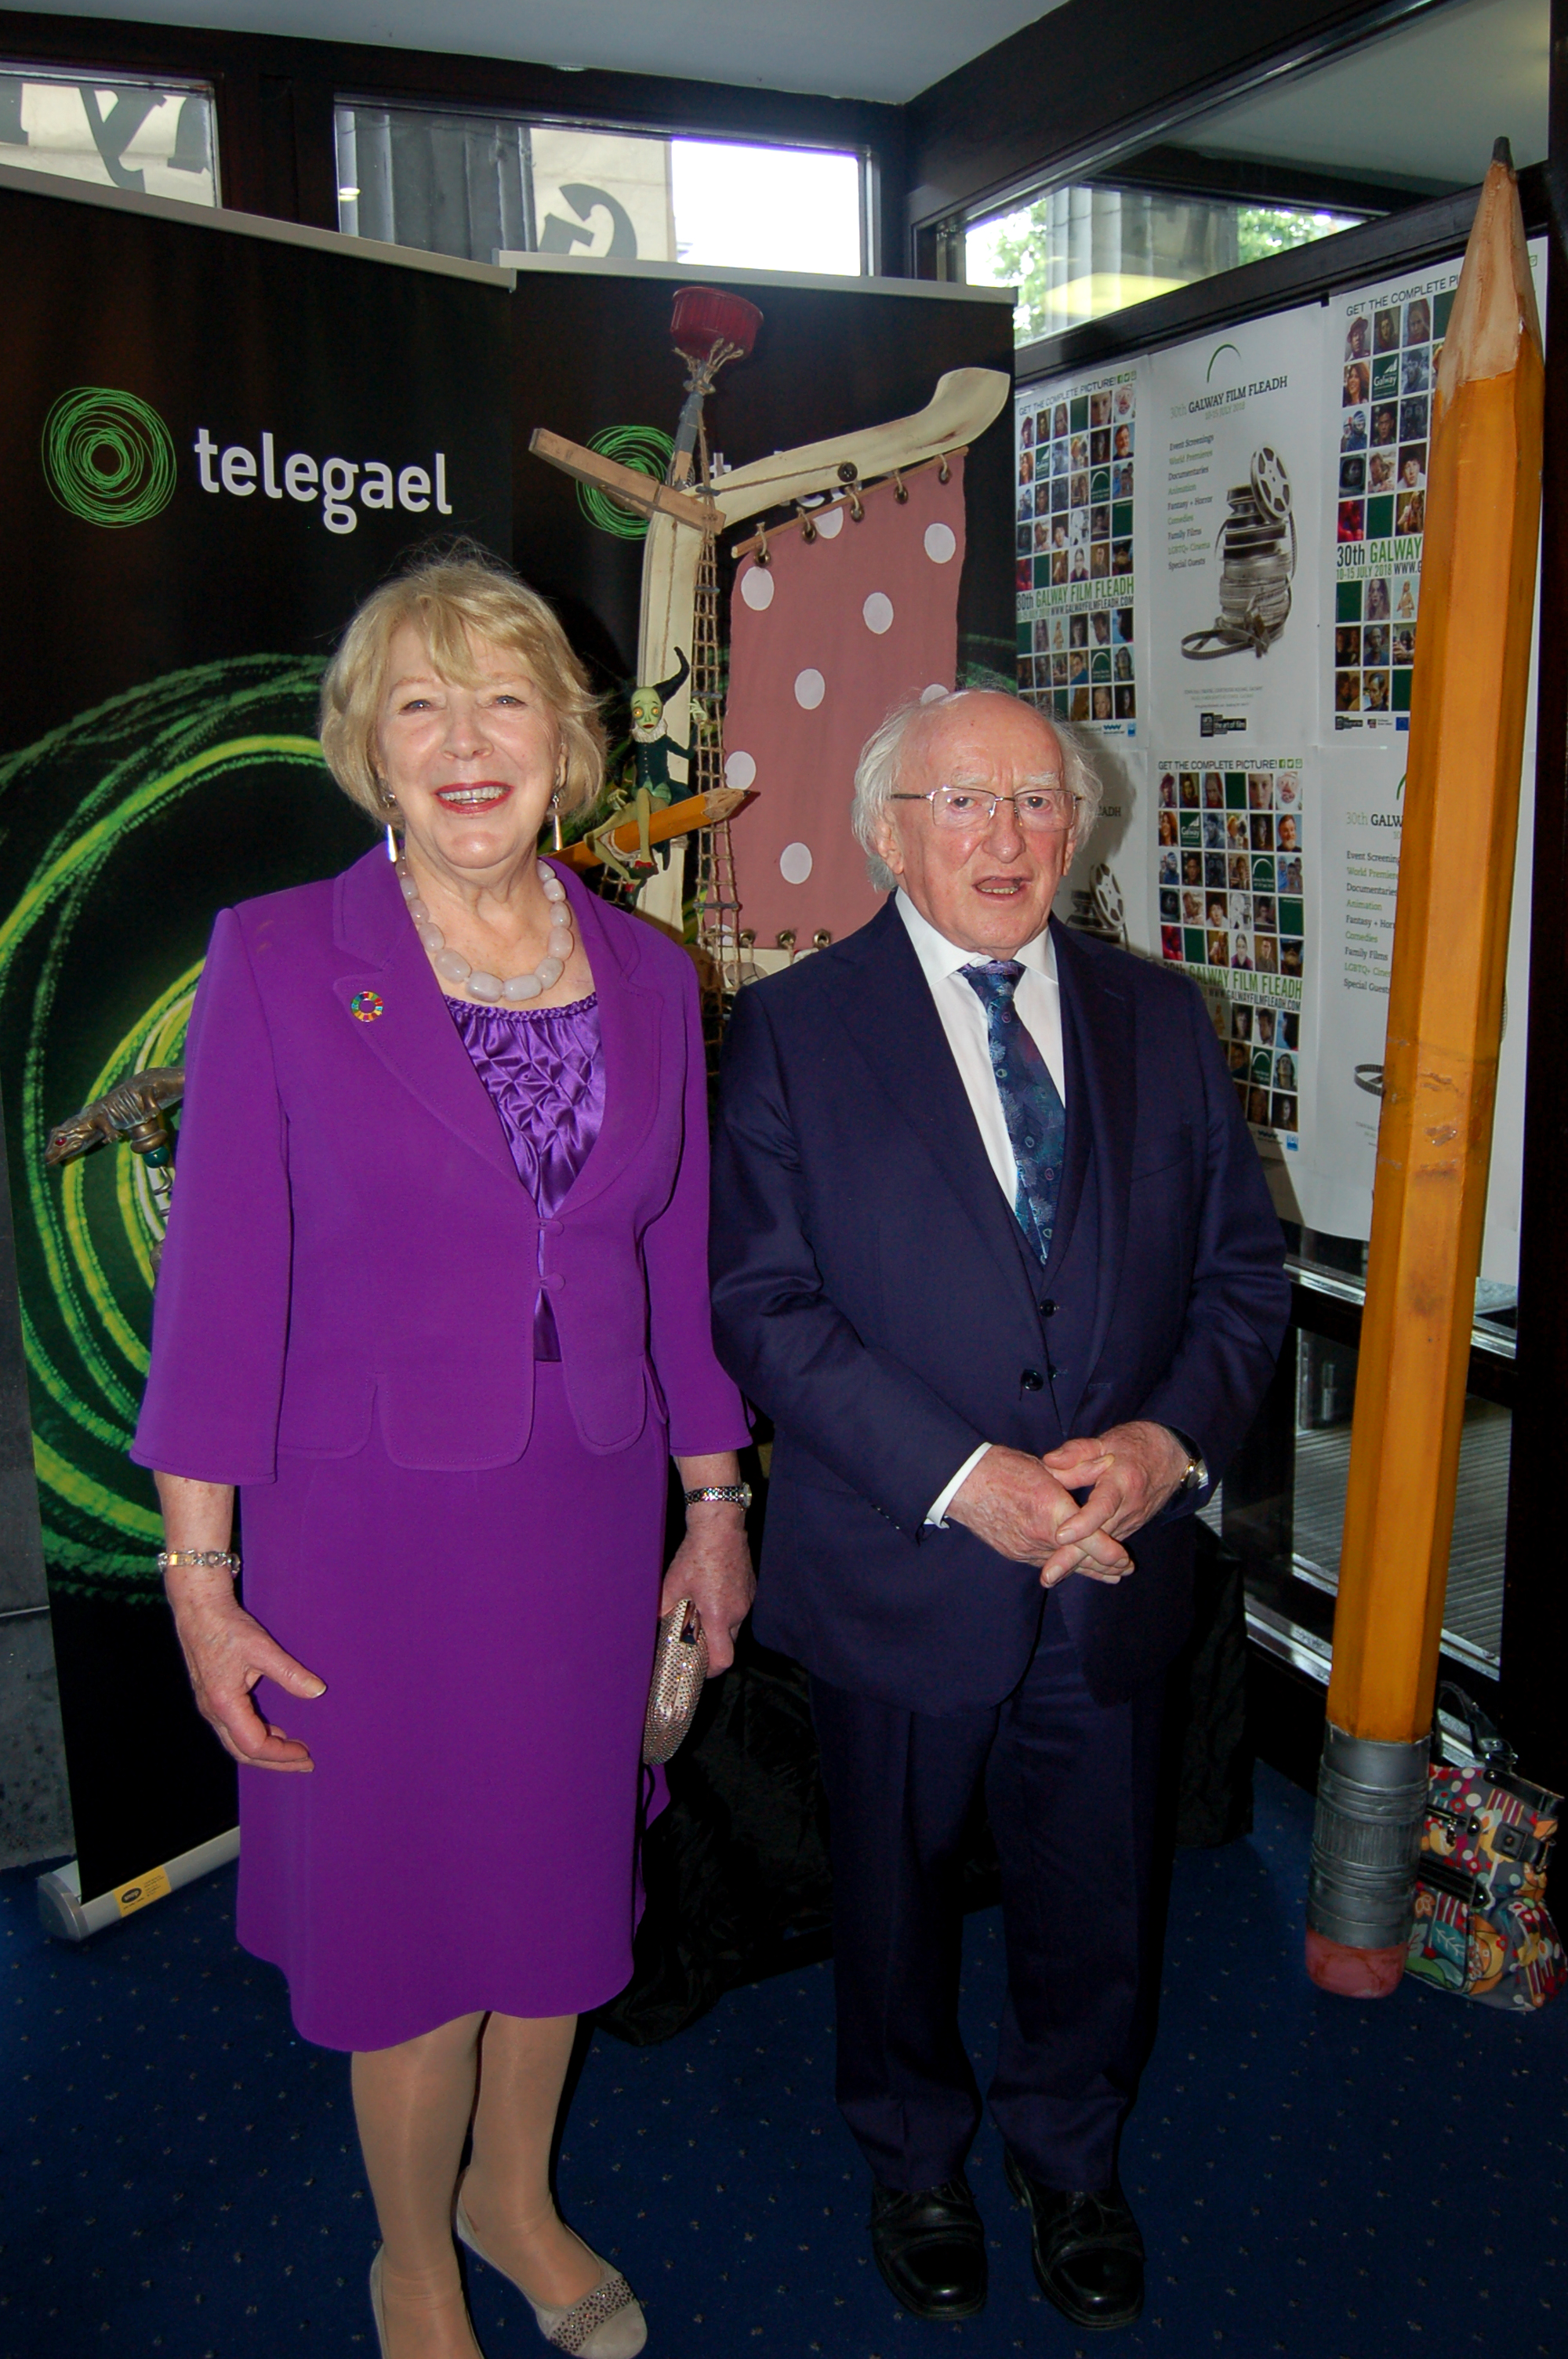 Mrs. Sabina Higgins and President Higgins Pictured in front of the 'Captain Morten and the Spider Queen' display in the Town Hall Theatre Galway as part of the 2018 Galway Film Fleadh. Photo Billy Keady